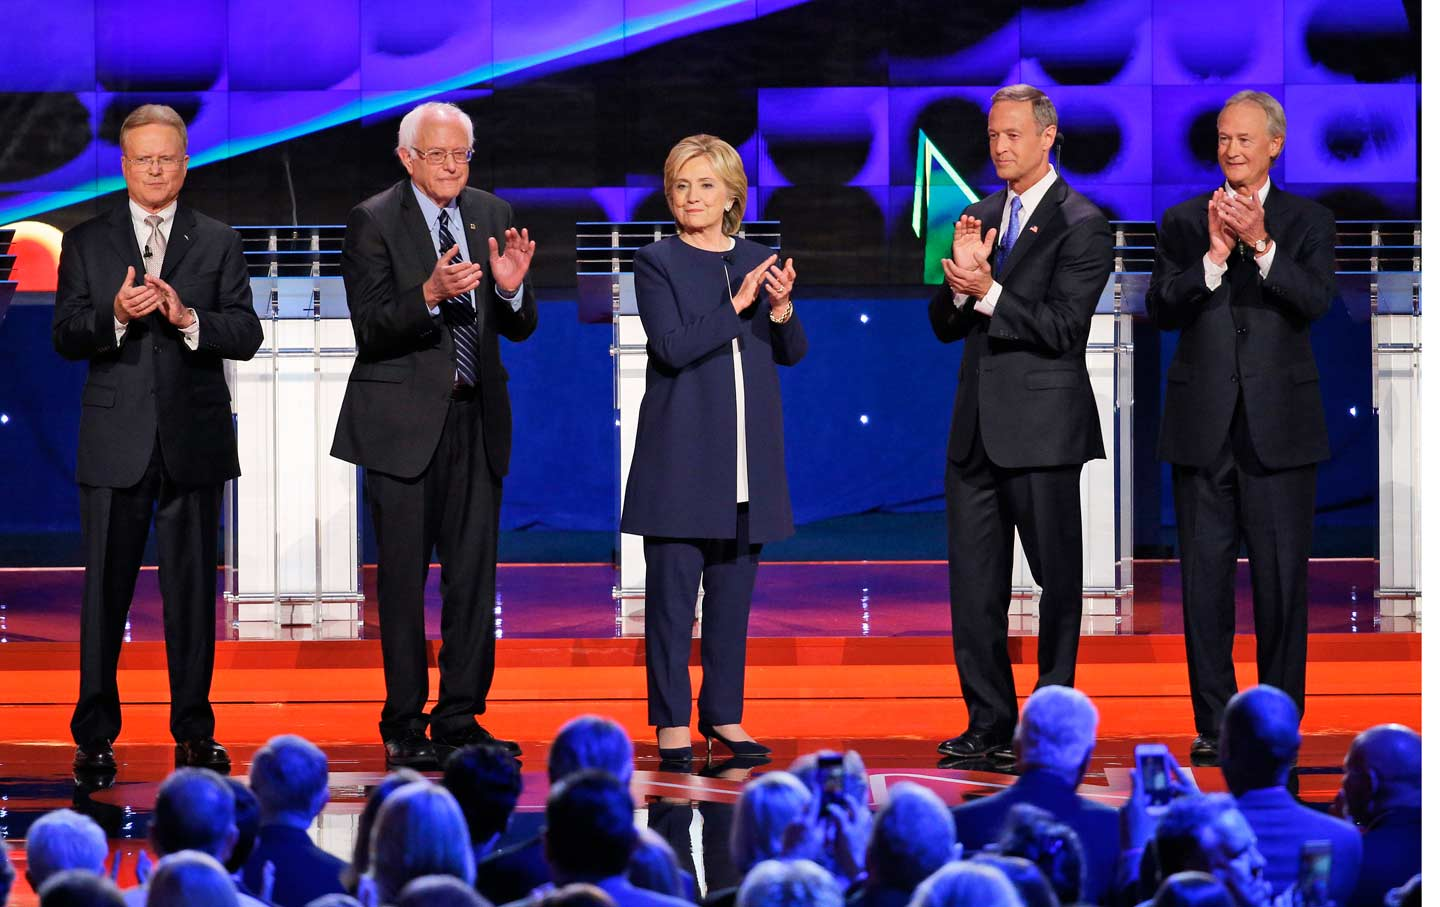 Democratic_debates_10-13-15_ap_img